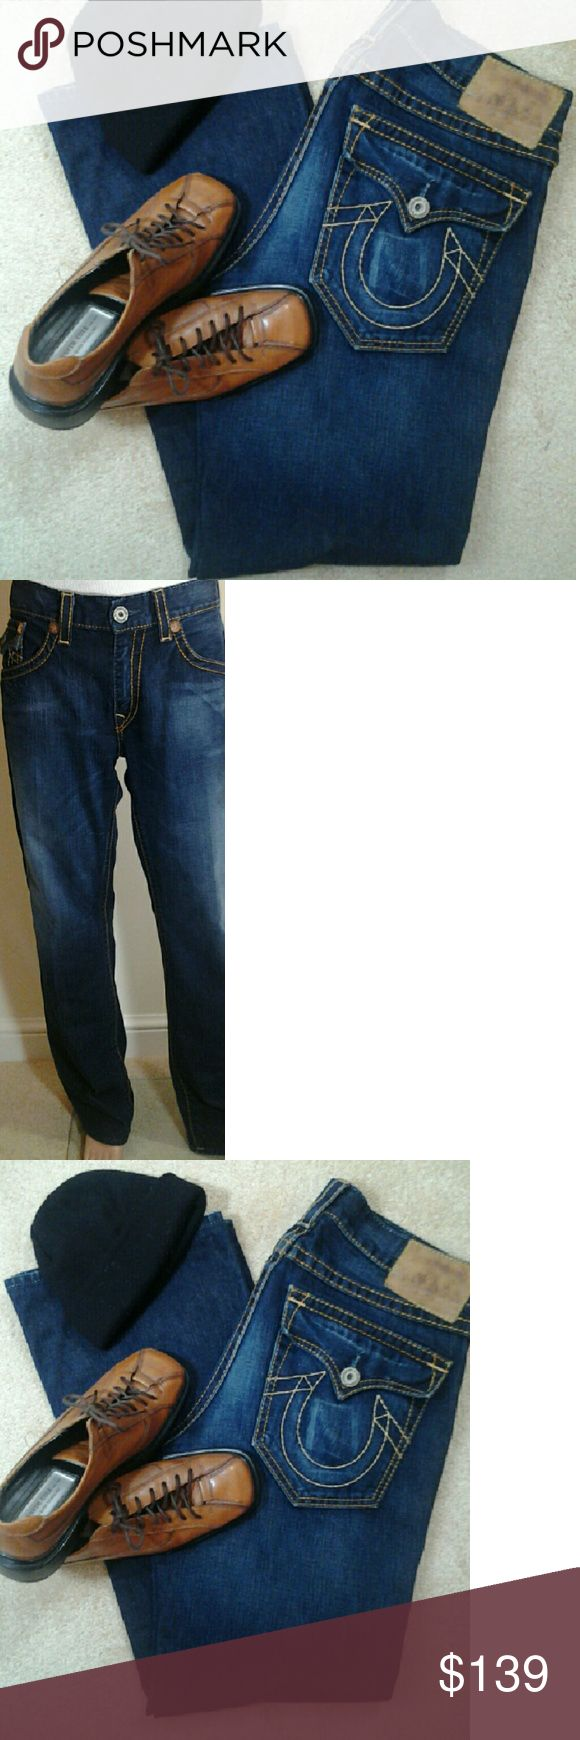 True Religion world tour men's jeans True Religion world tour men's jeans 100% Cotton... Relaxed / Long ..... in excellent condition... right back pocket have wallet imprint...Otherwise,  No Defects!!!! 36x34  Priced to Sale... FIRM True Religion Jeans Relaxed